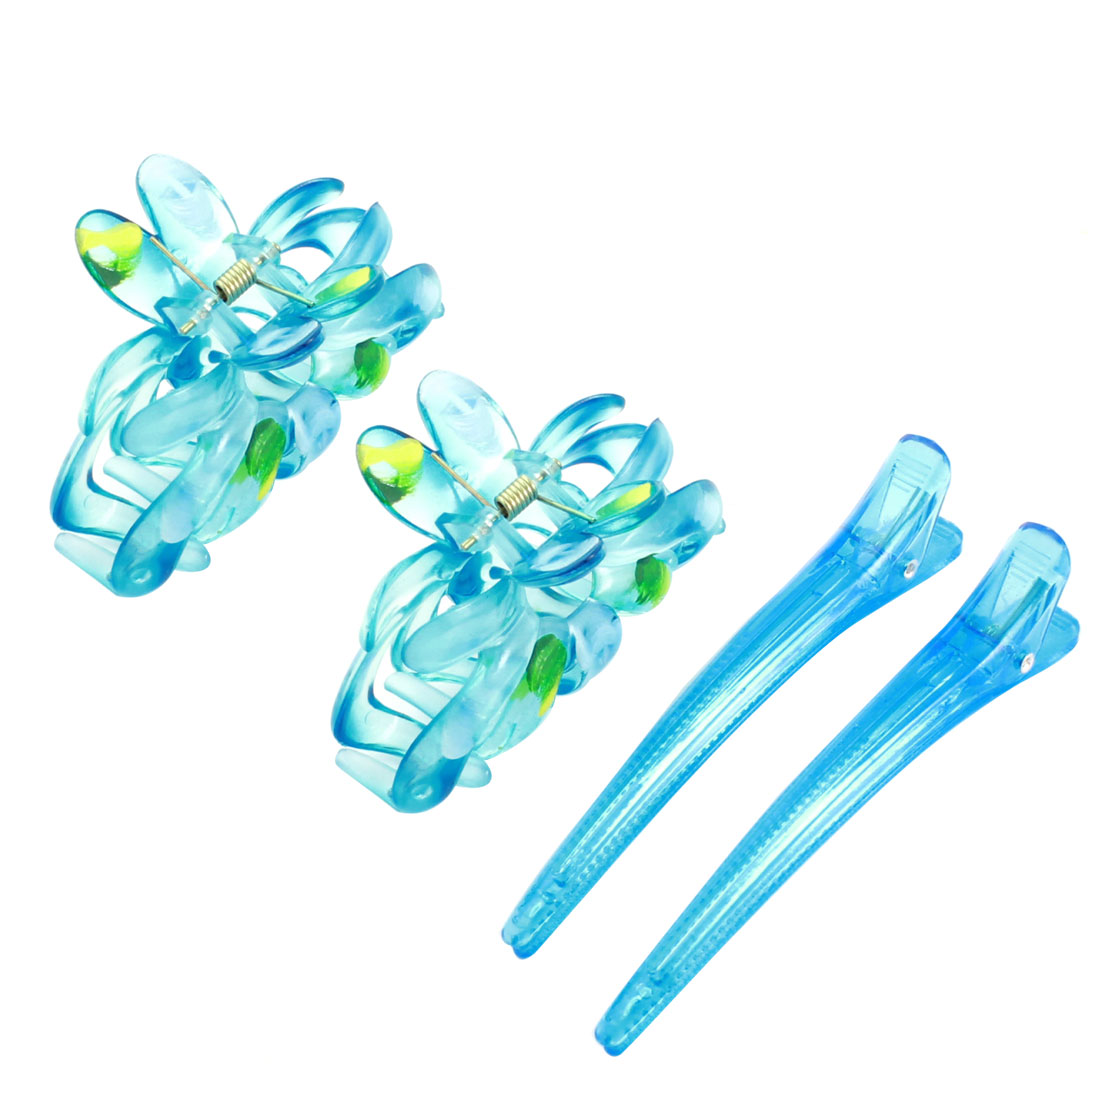 4 Pcs Clear Blue Spring Loaded Plastic Hair Claws Clips w Alligator Hair Pins